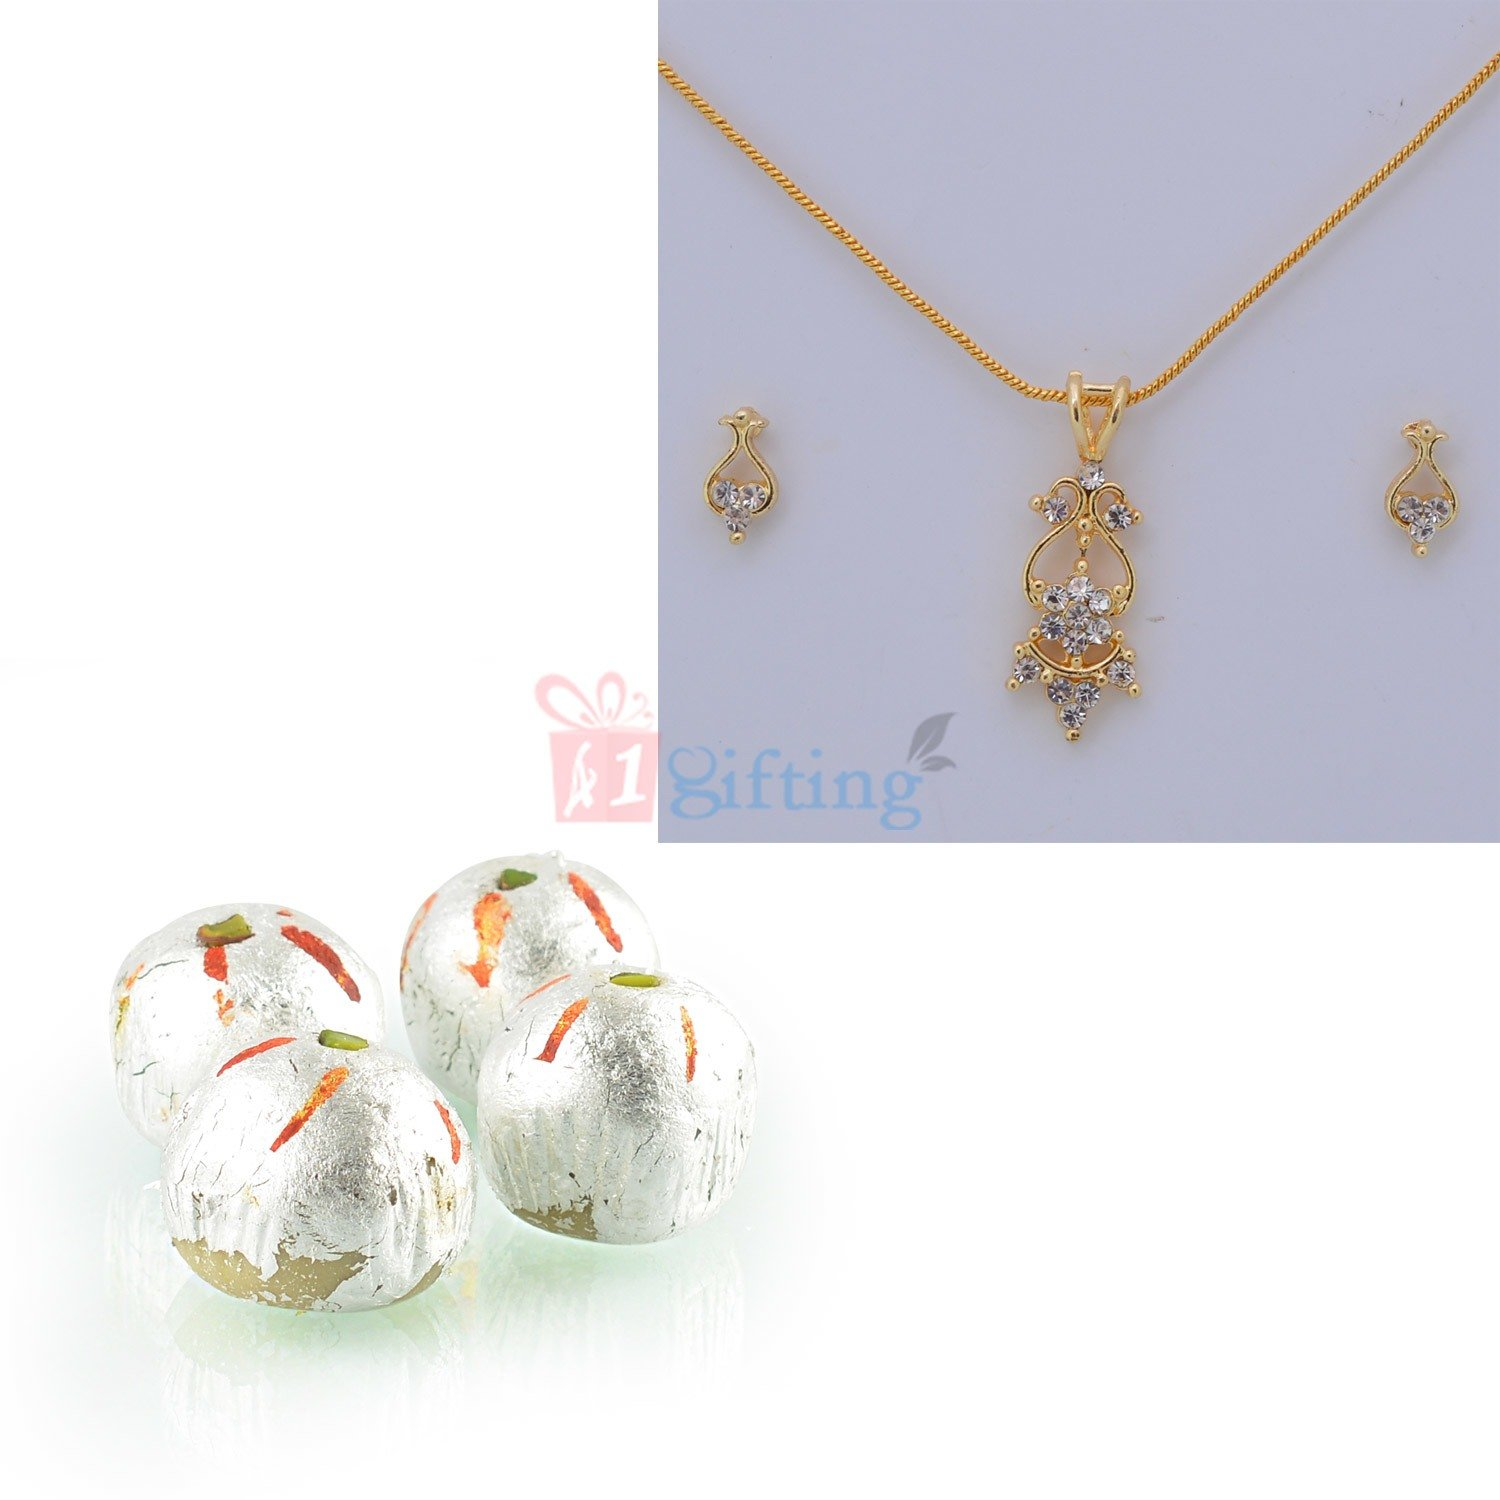 Golden Diamond Jewelry Set with Kaju Laddu